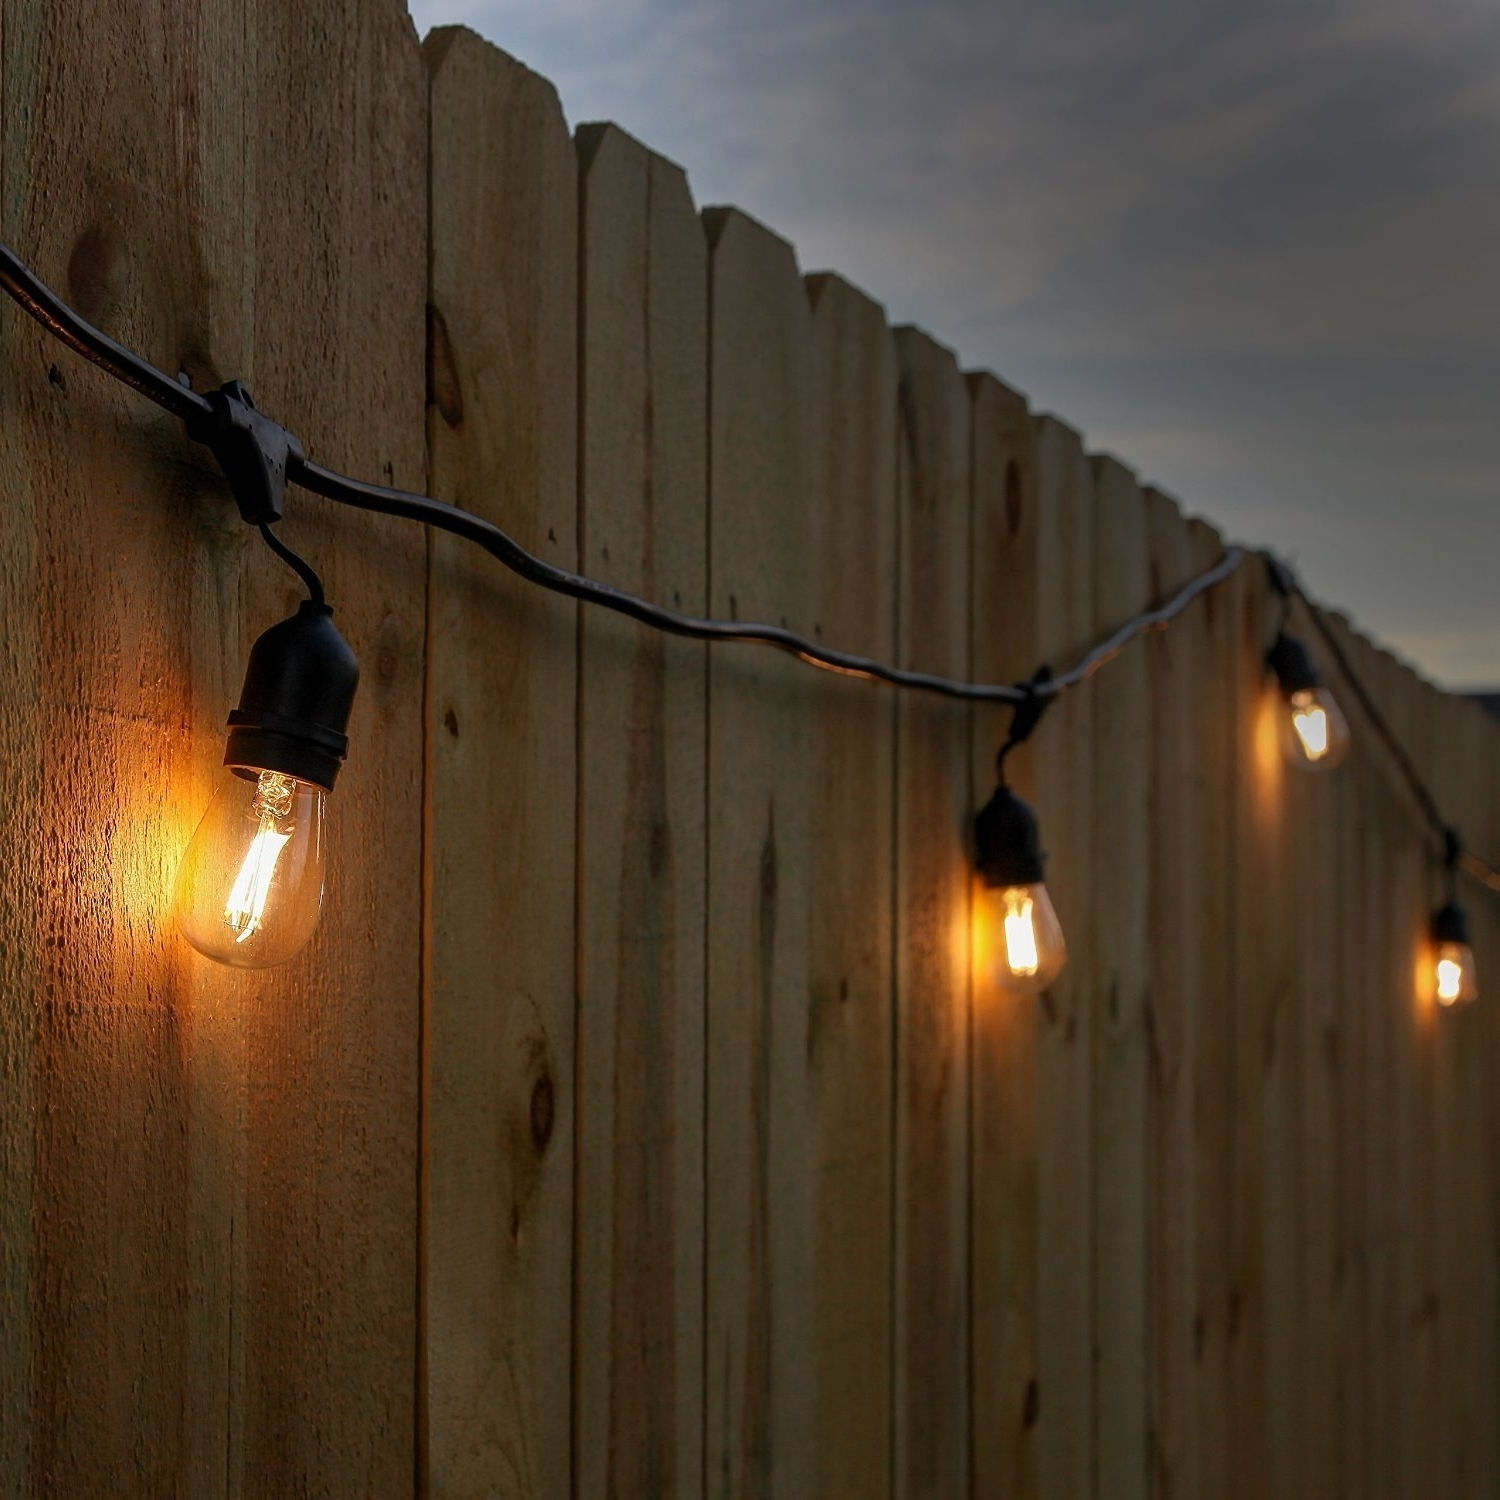 Well Liked Newhouse Lighting 48 Foot Outdoor String Lights, Led Bulbs Included Regarding Hanging Outdoor Lights With Wire (View 20 of 20)